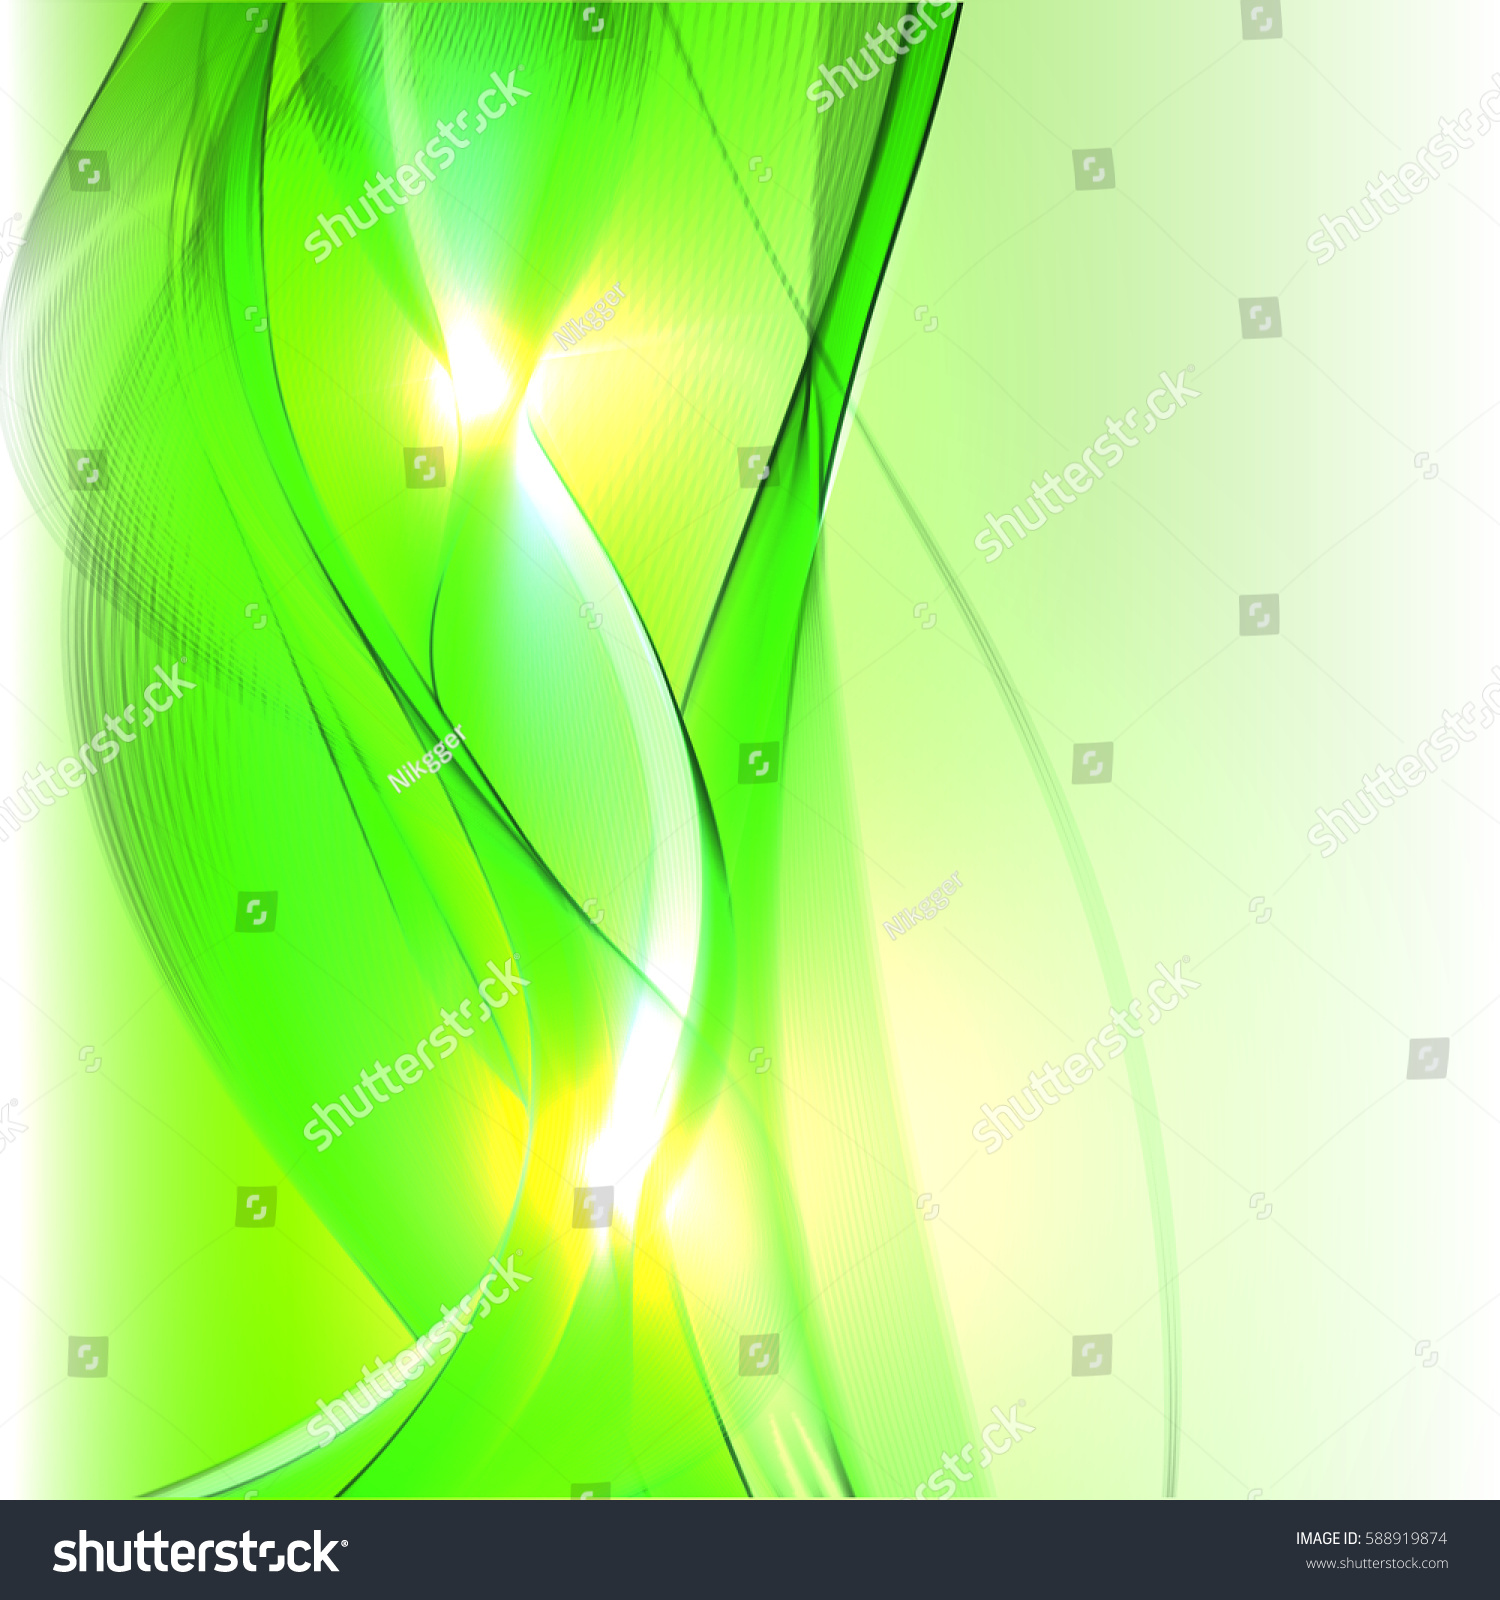 background backgrounds abstract advertisements - photo #2